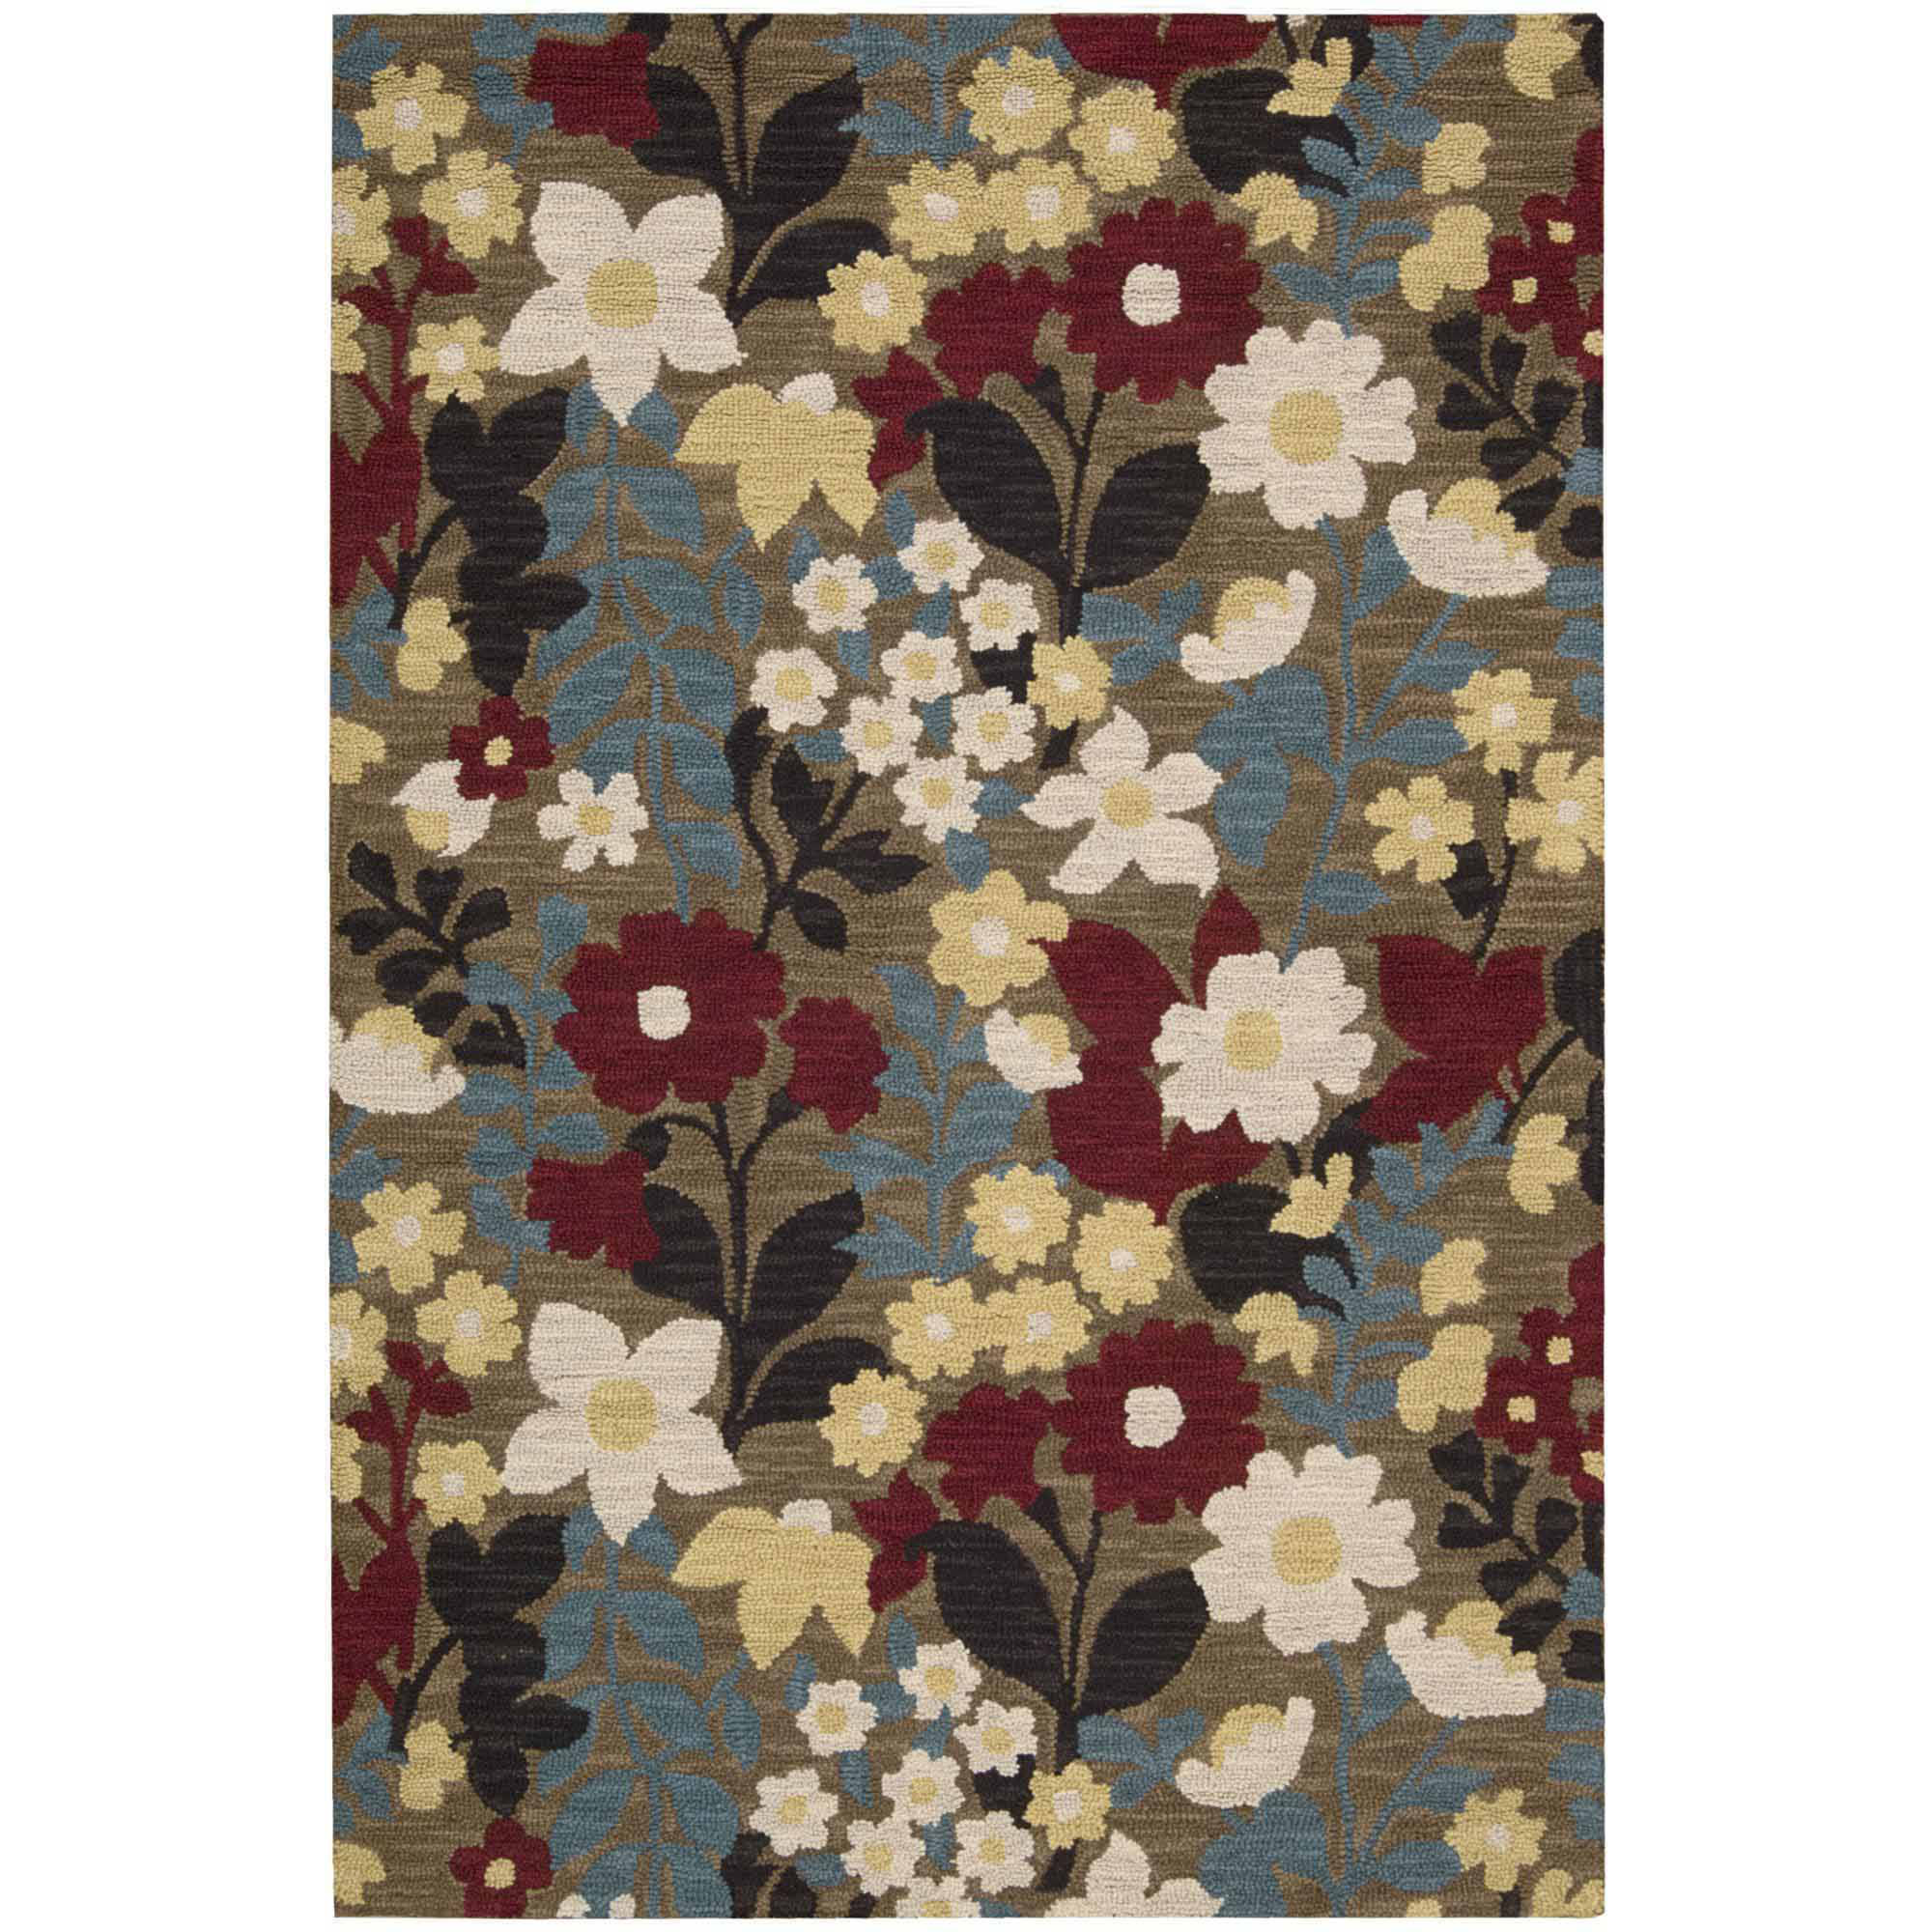 Nourison Marbella Collection Modern Folk-Art Area Rug